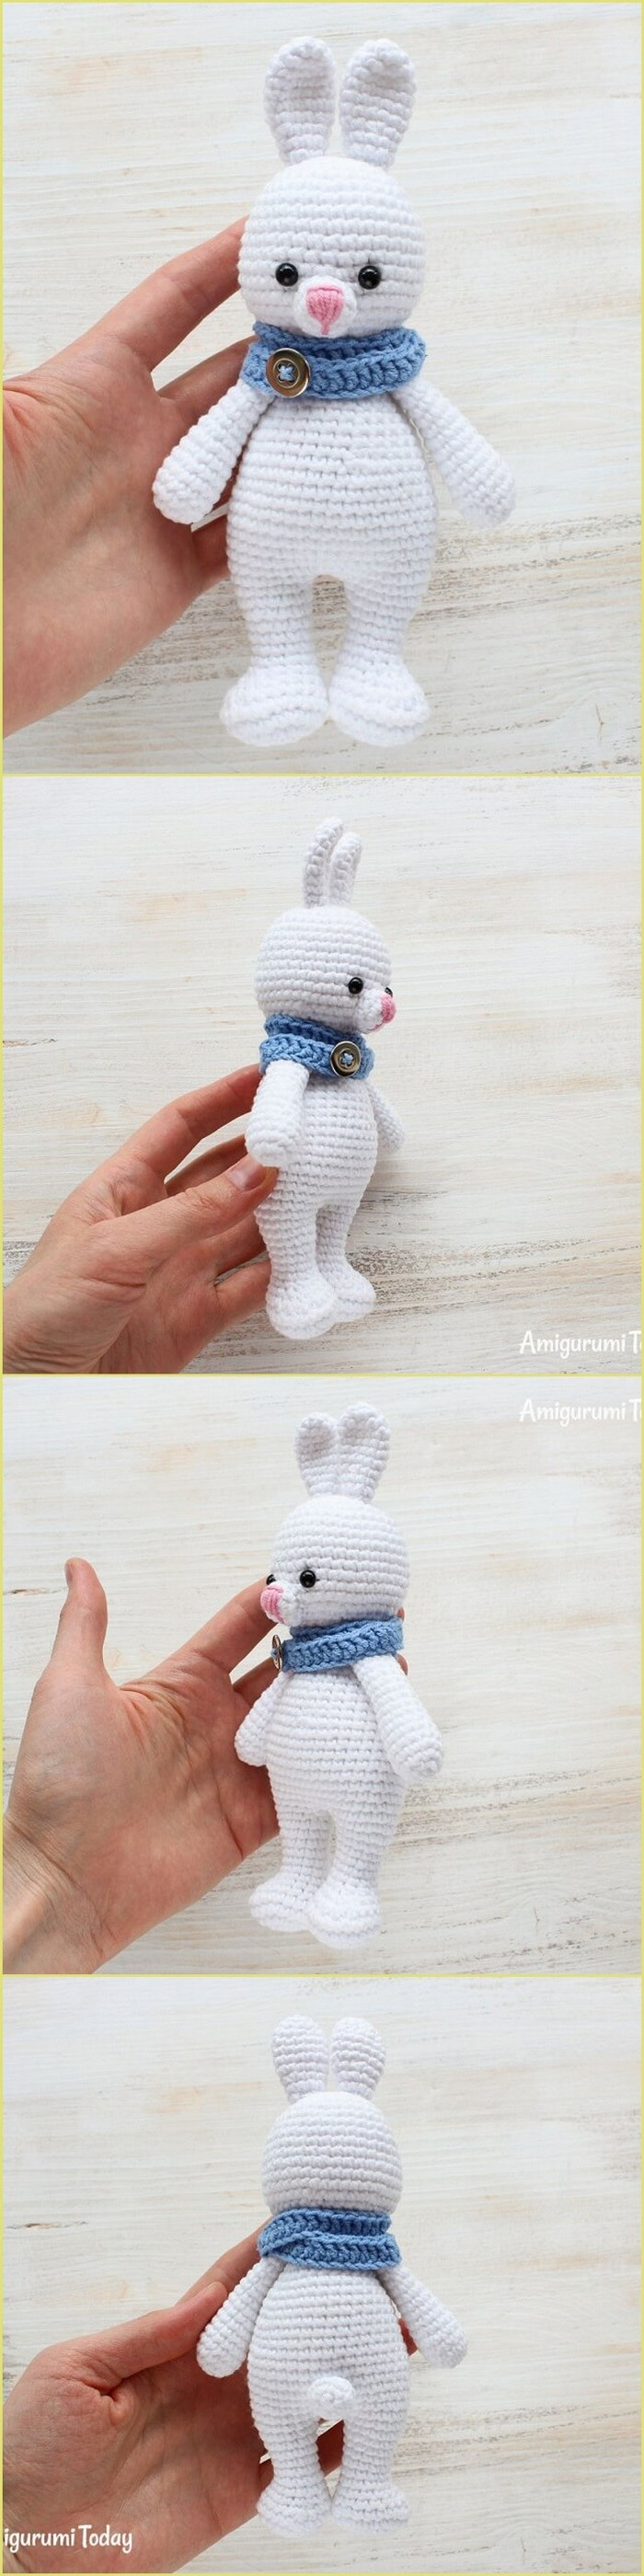 Crochet toys Ideas-5